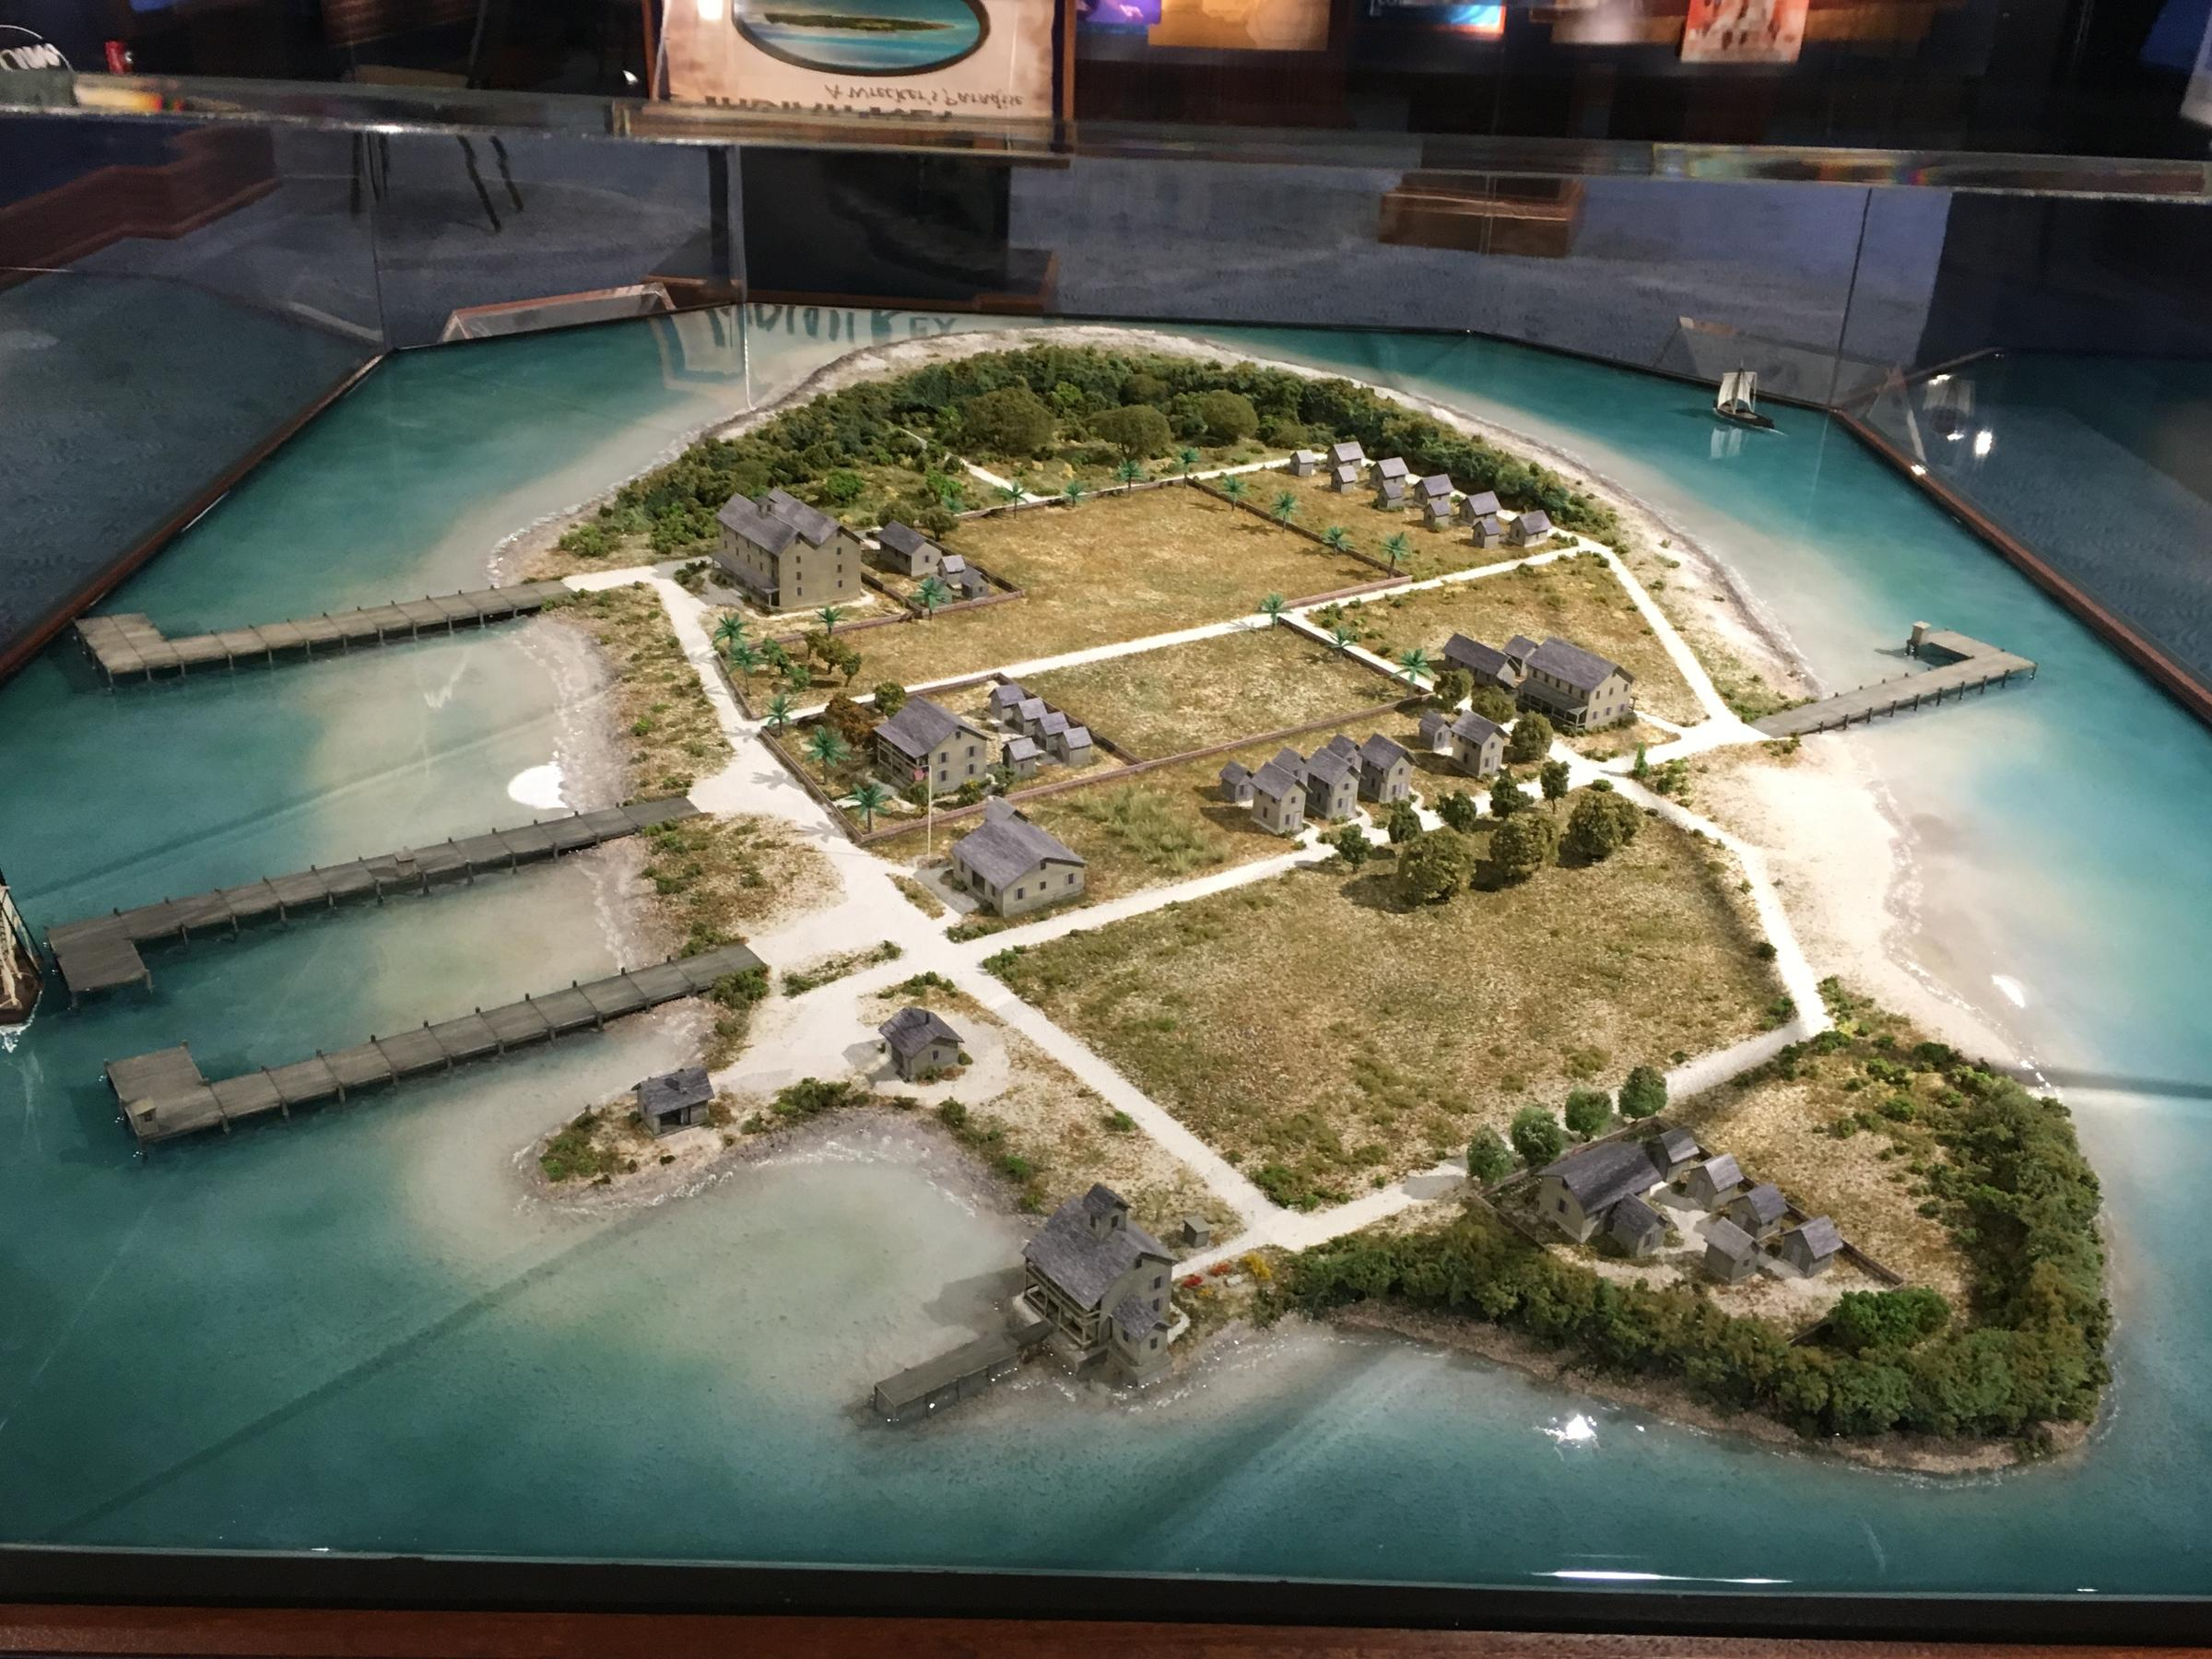 The new exhibit at the Florida Keys History and Discovery Center in Islamorada includes a 3-D model that shows Indian Key in its early 19th century heyday. Photo by Nancy Klingener.